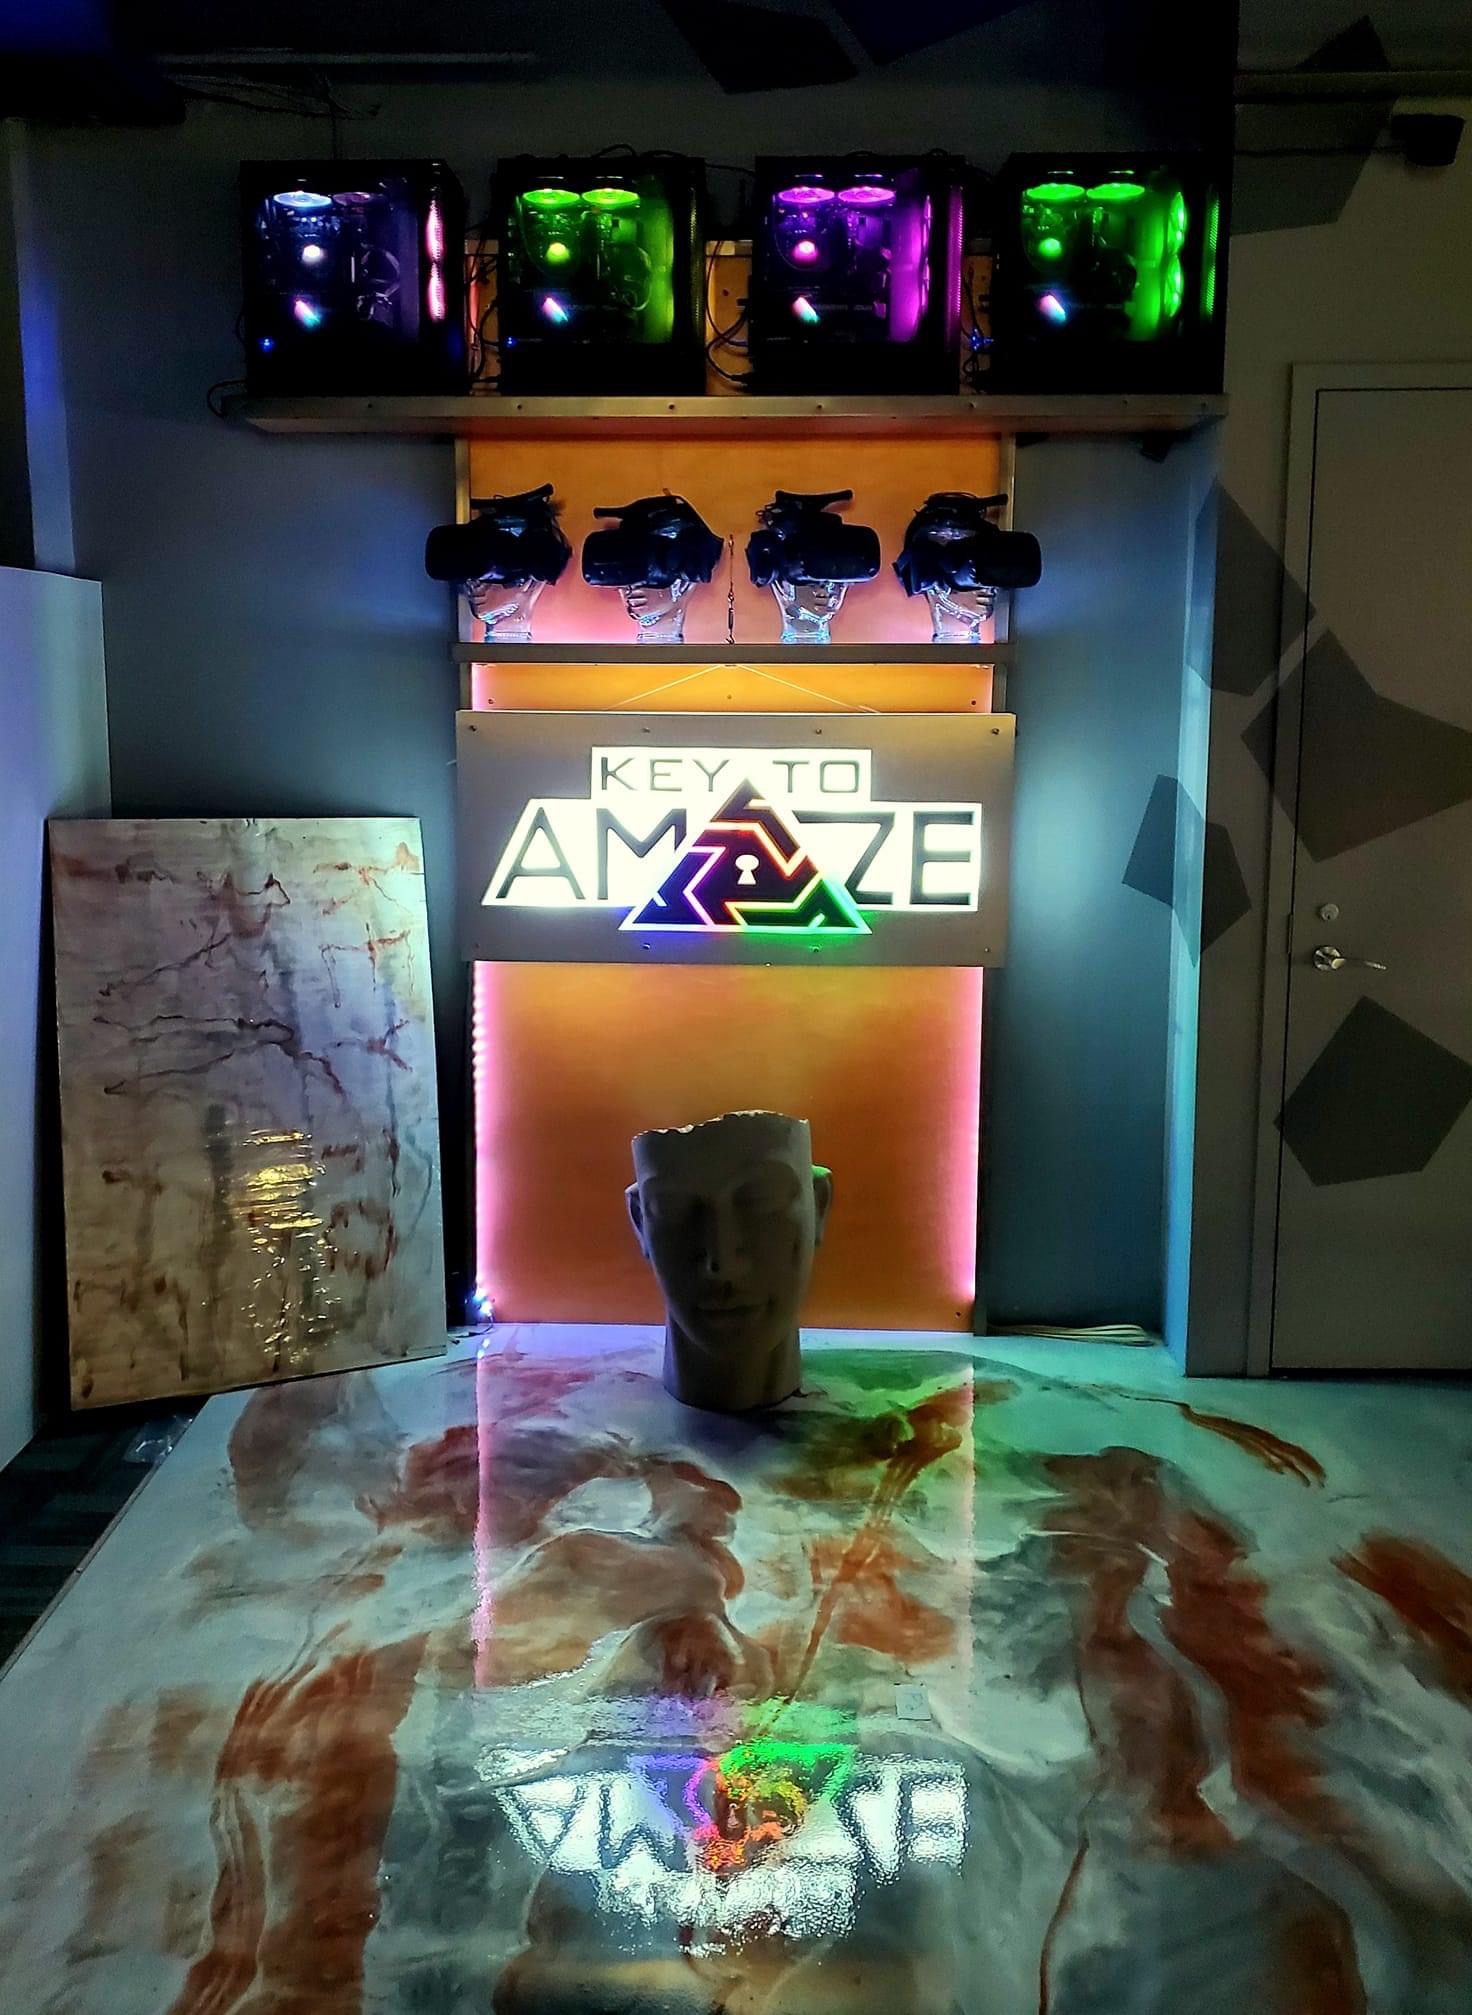 Amaze Sign & Arean A-1